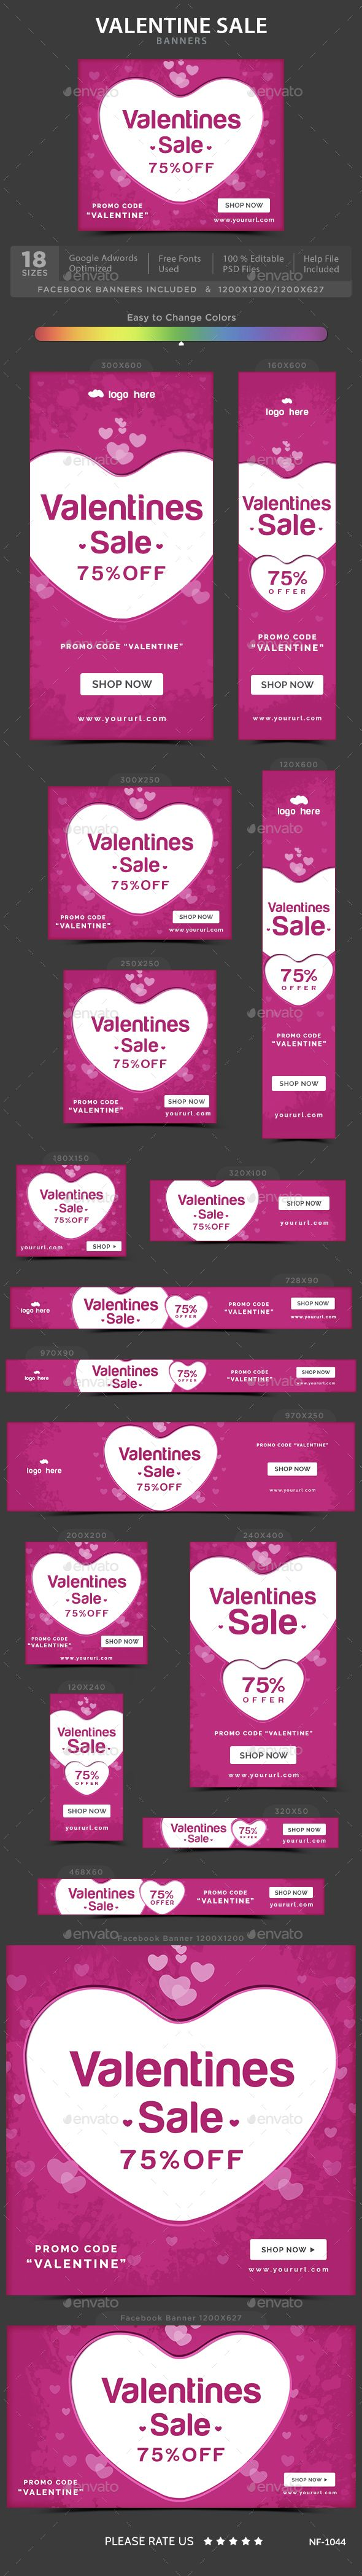 Valentine's Sale Banners